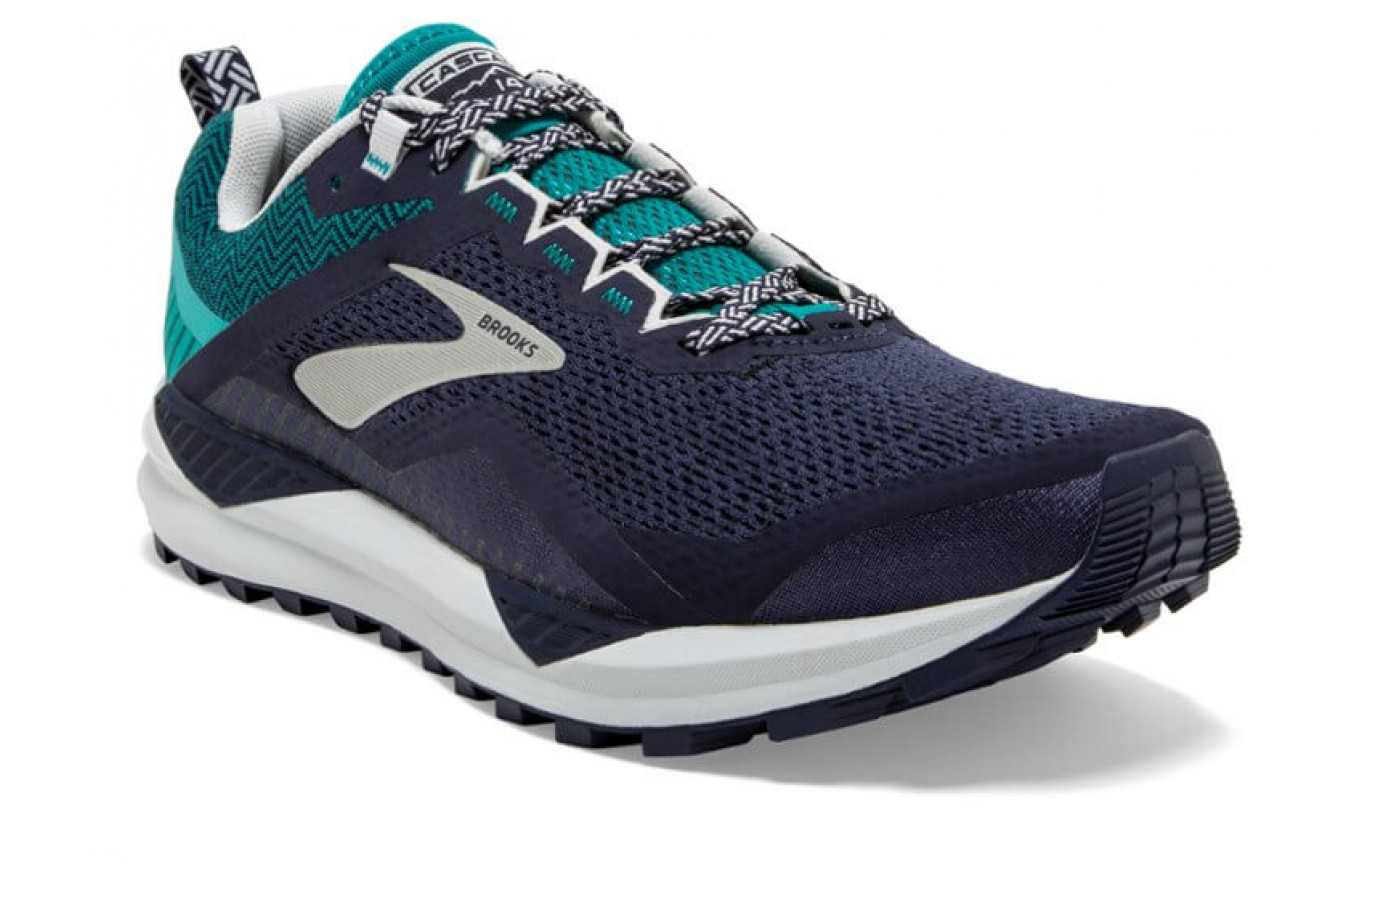 The Cascadia 14 is available in six colorways